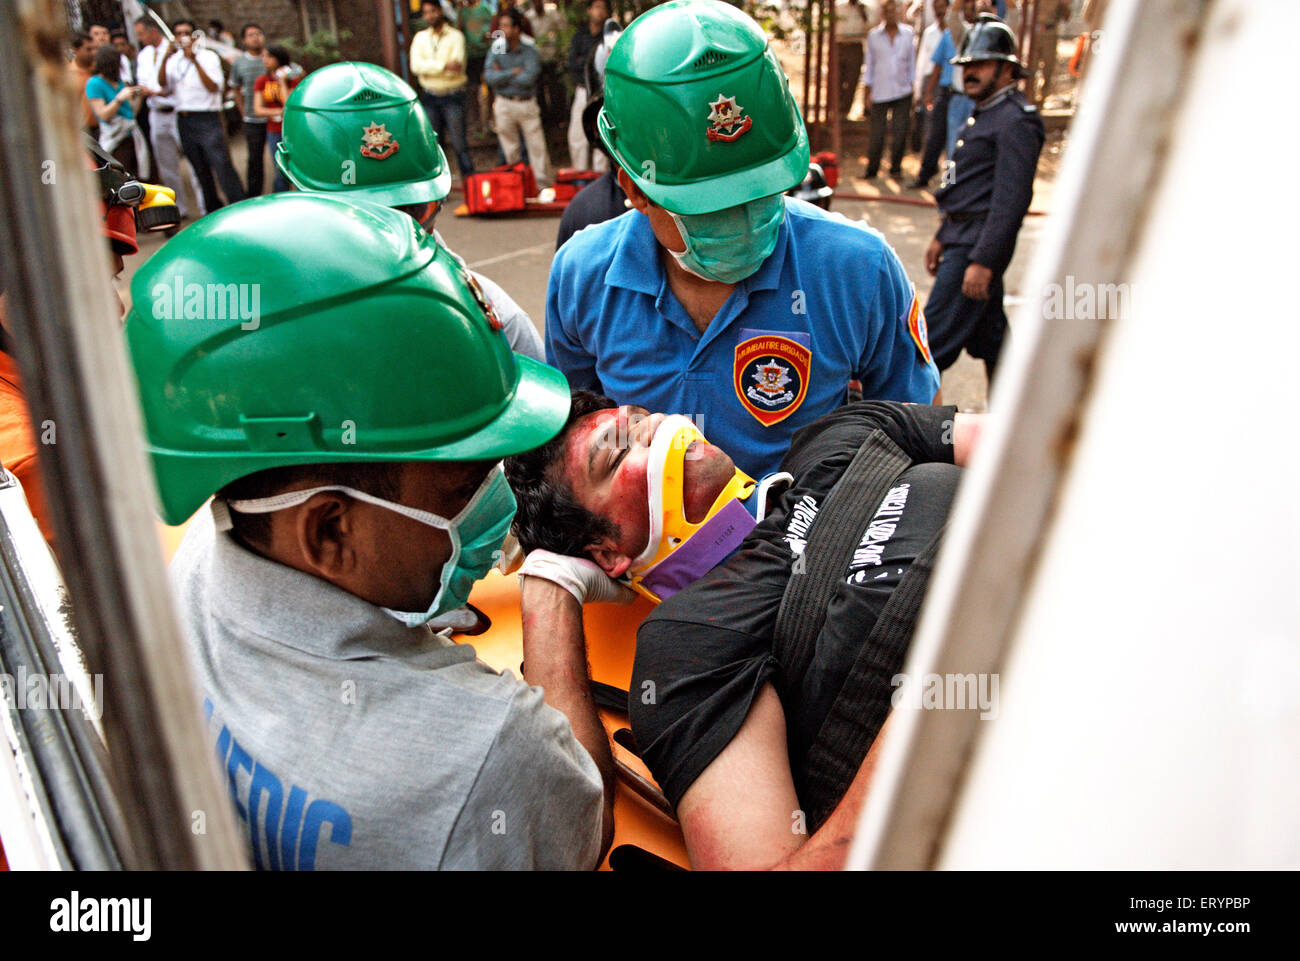 Fire brigade personnel demonstrate emergency rescue skill for KEM college students in Bombay - Stock Image